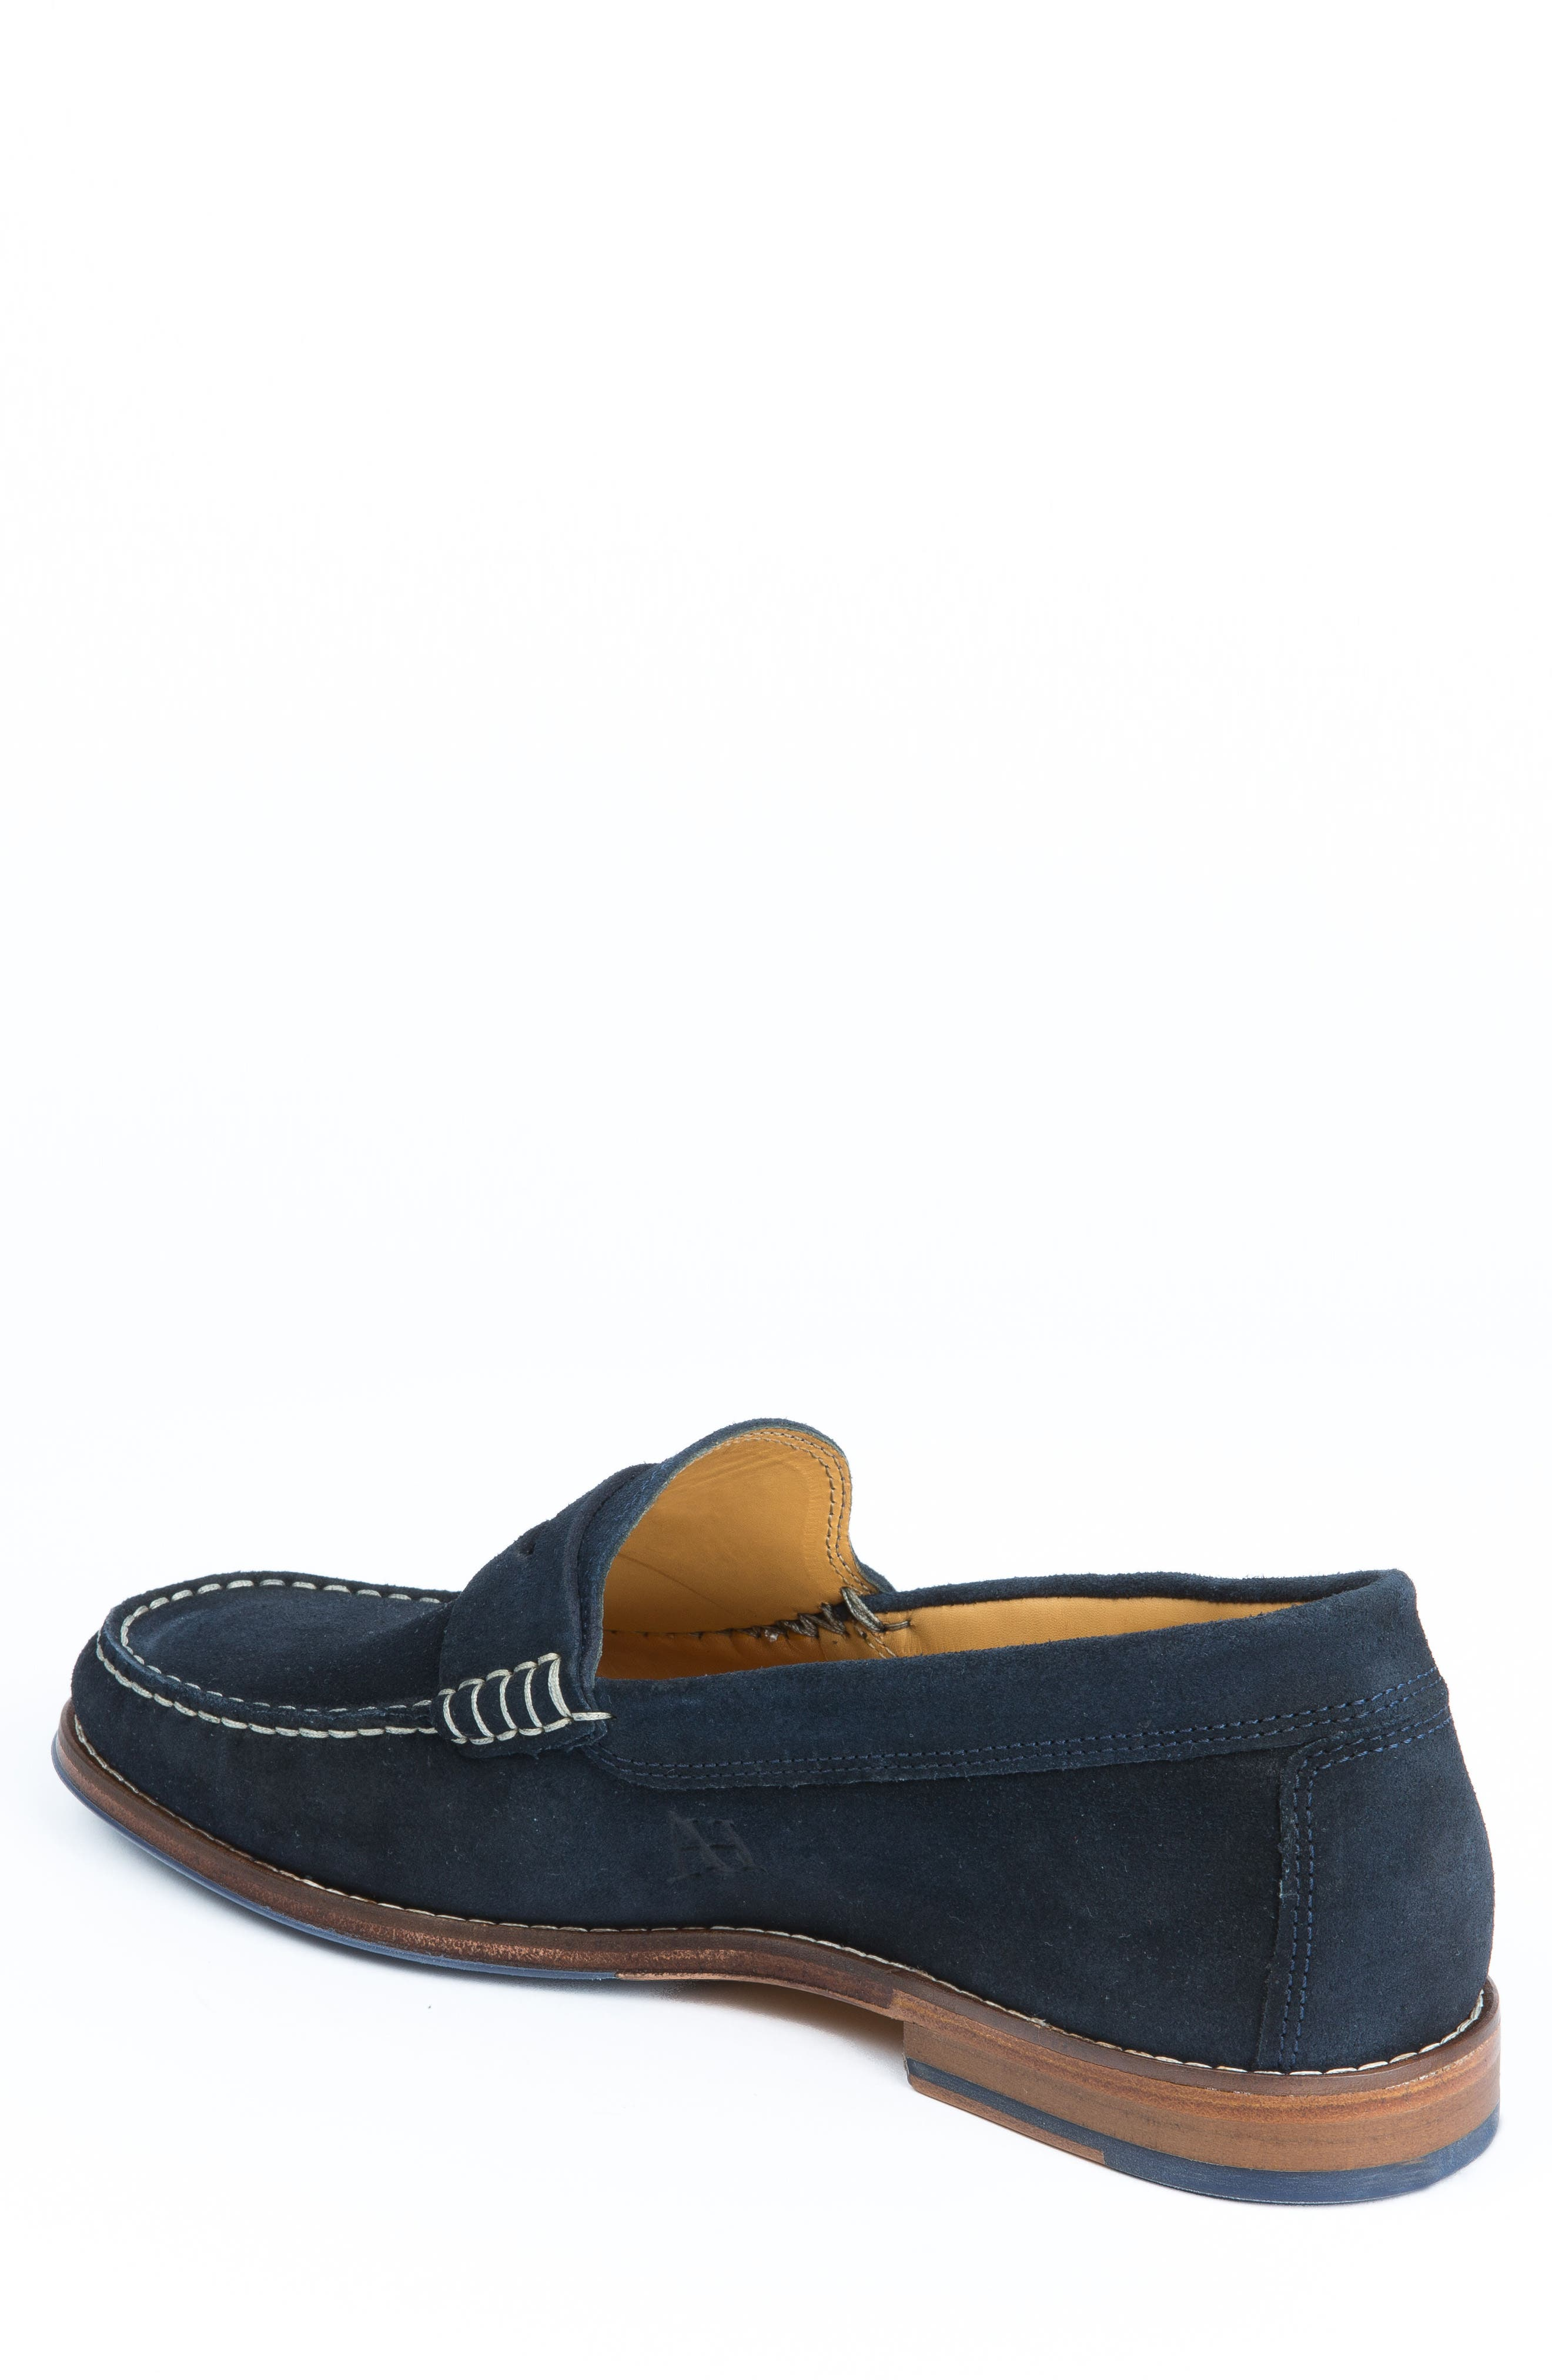 Ripleys Penny Loafer,                             Alternate thumbnail 2, color,                             Navy Suede